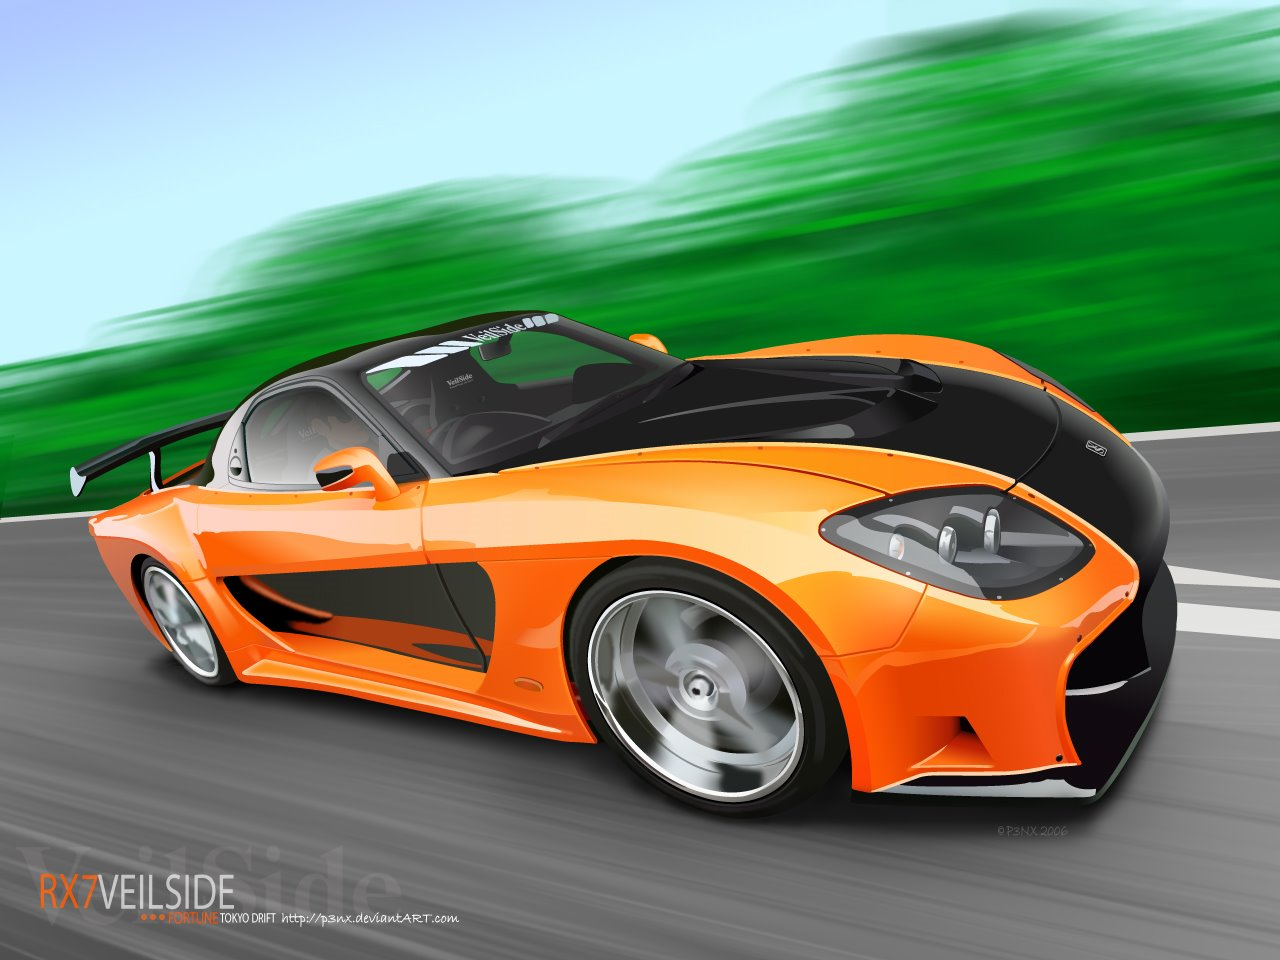 10 Cars Backgrounds Wallpapers HD Download 1280x960